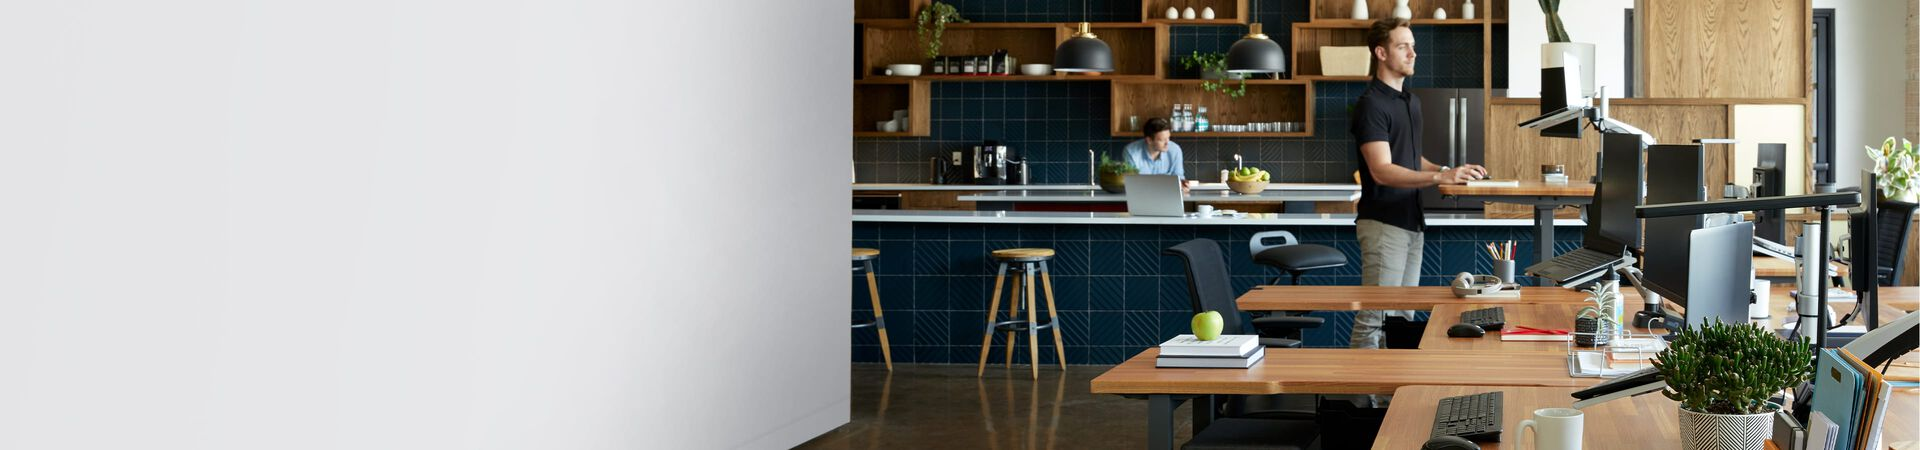 standing desks, office chairs, and other office furniture in an open workspace